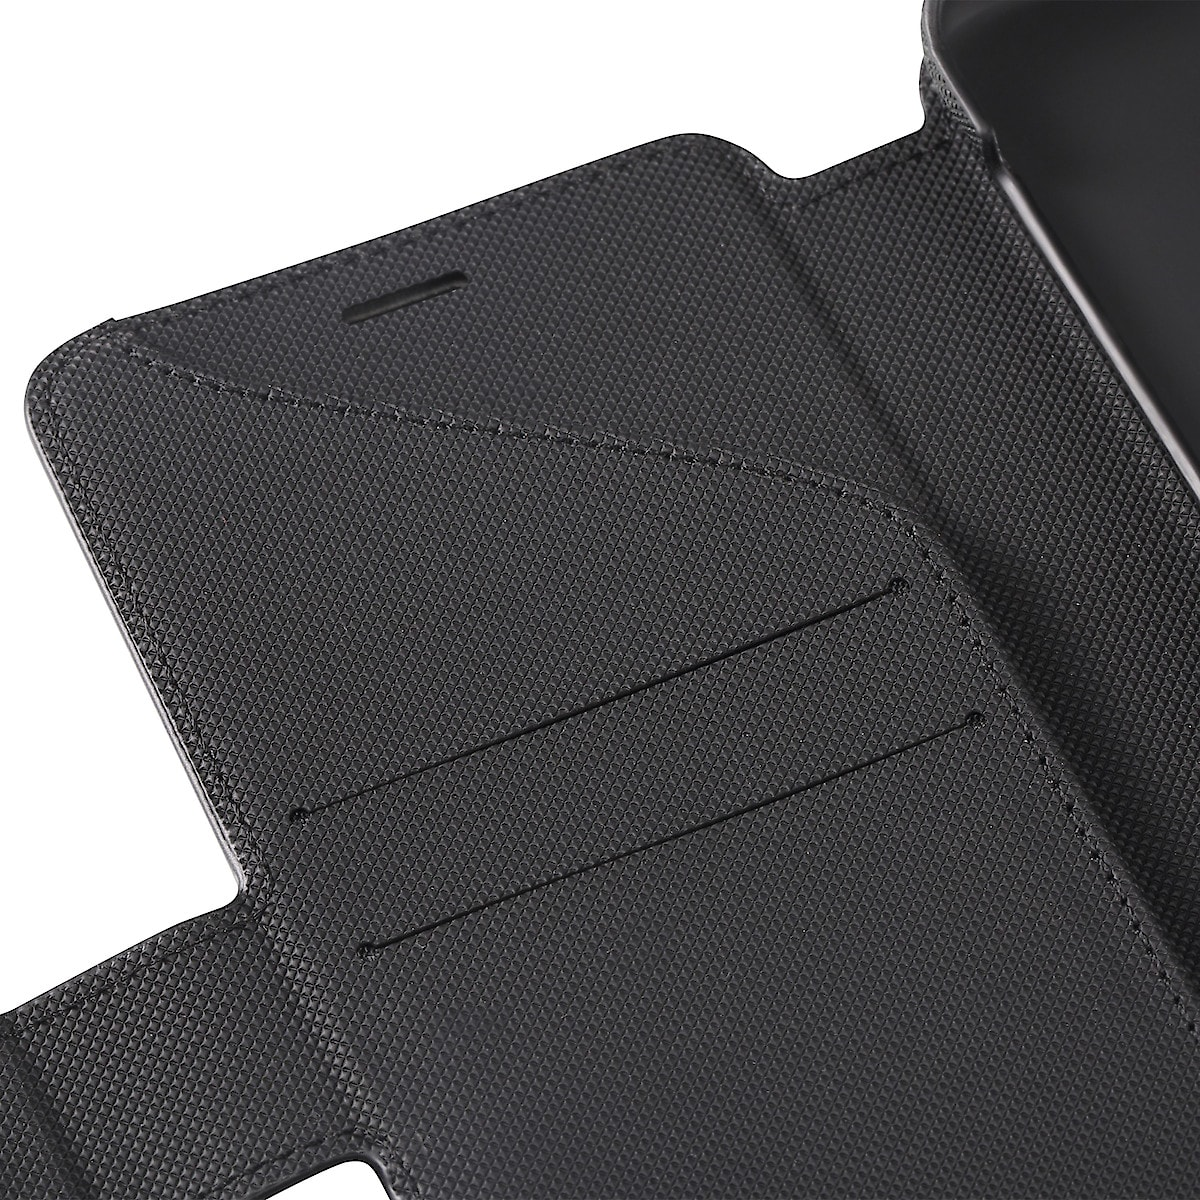 Holdit Wallet Case for Samsung Galaxy S9